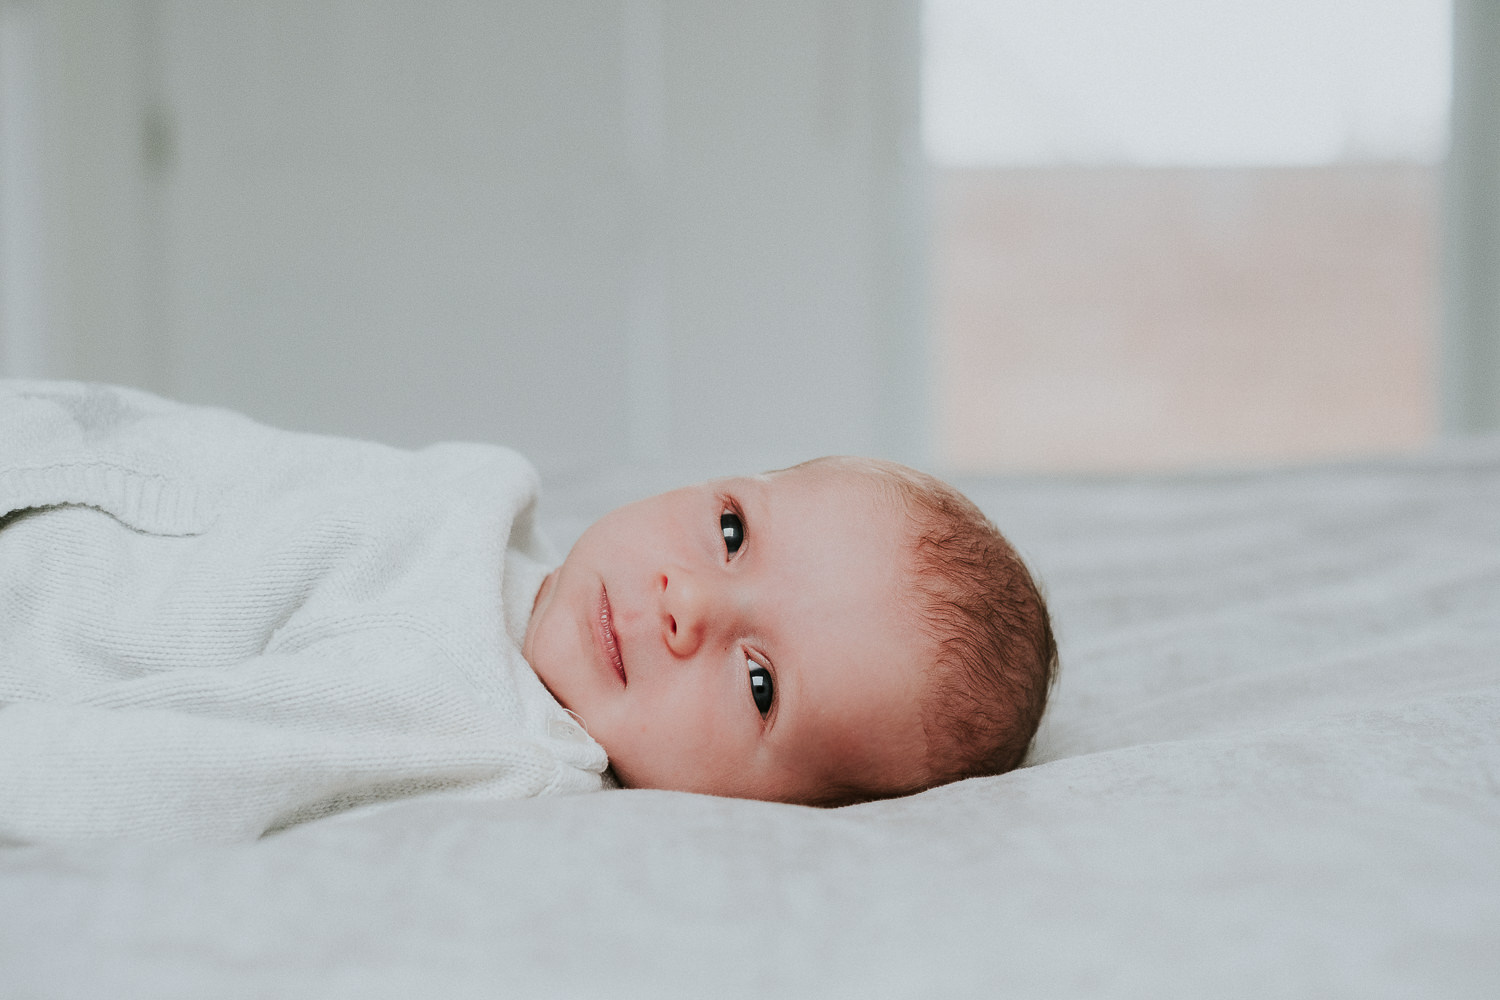 newborn baby boy with eyes open lying on bed natural light